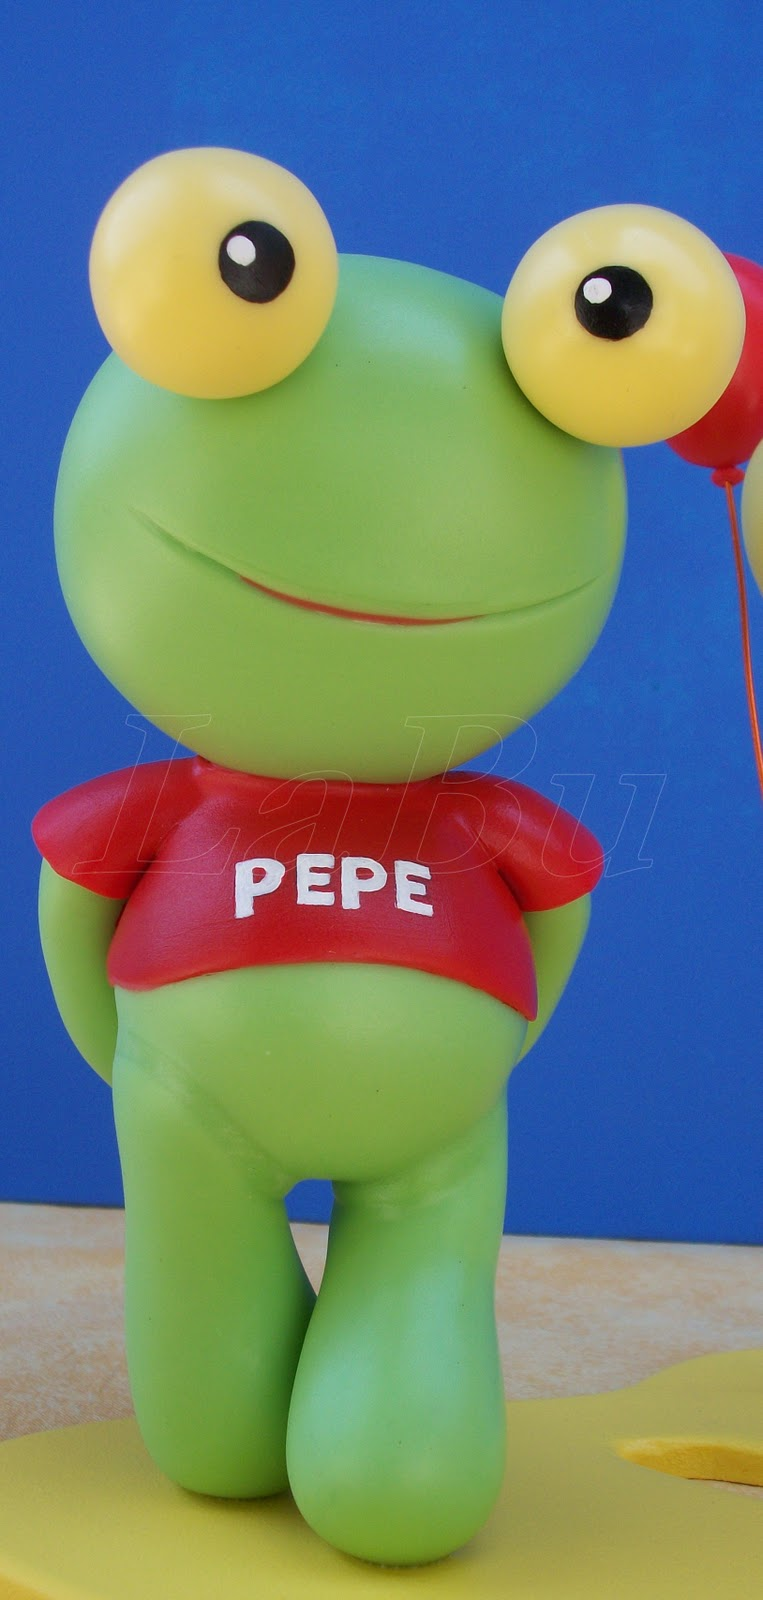 sapo pepe 5 - photo #1